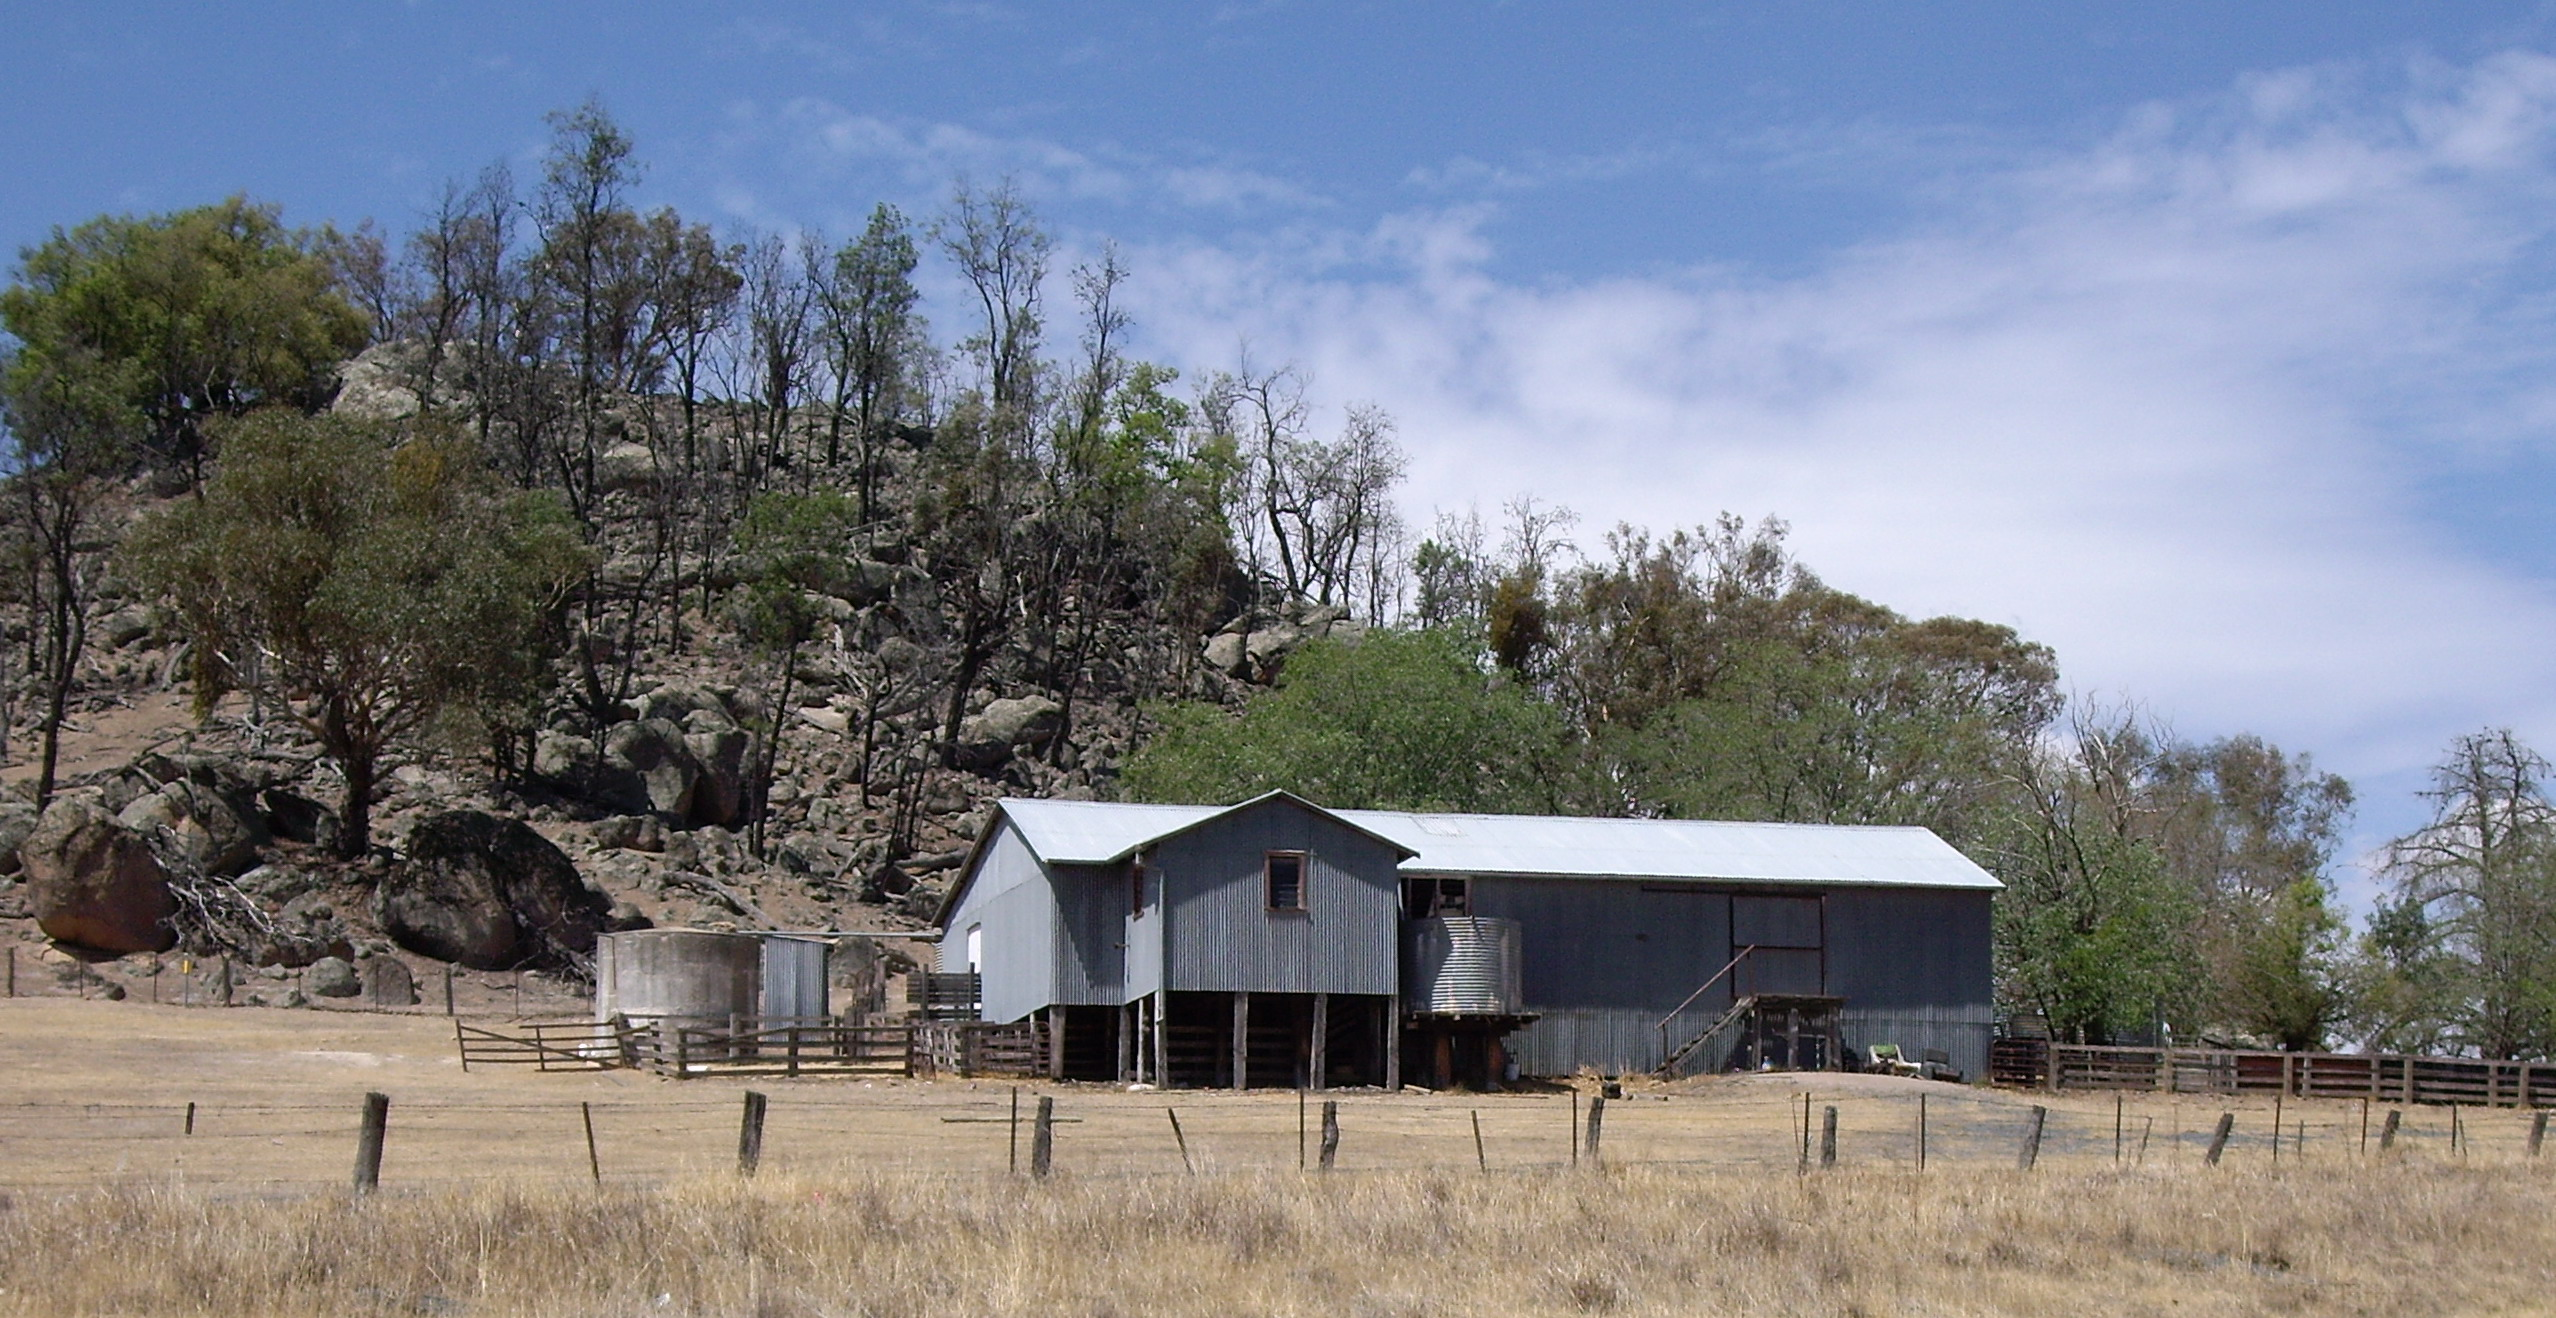 File:Kyeamba - Shearing Shed.jpg - Wikimedia Commons